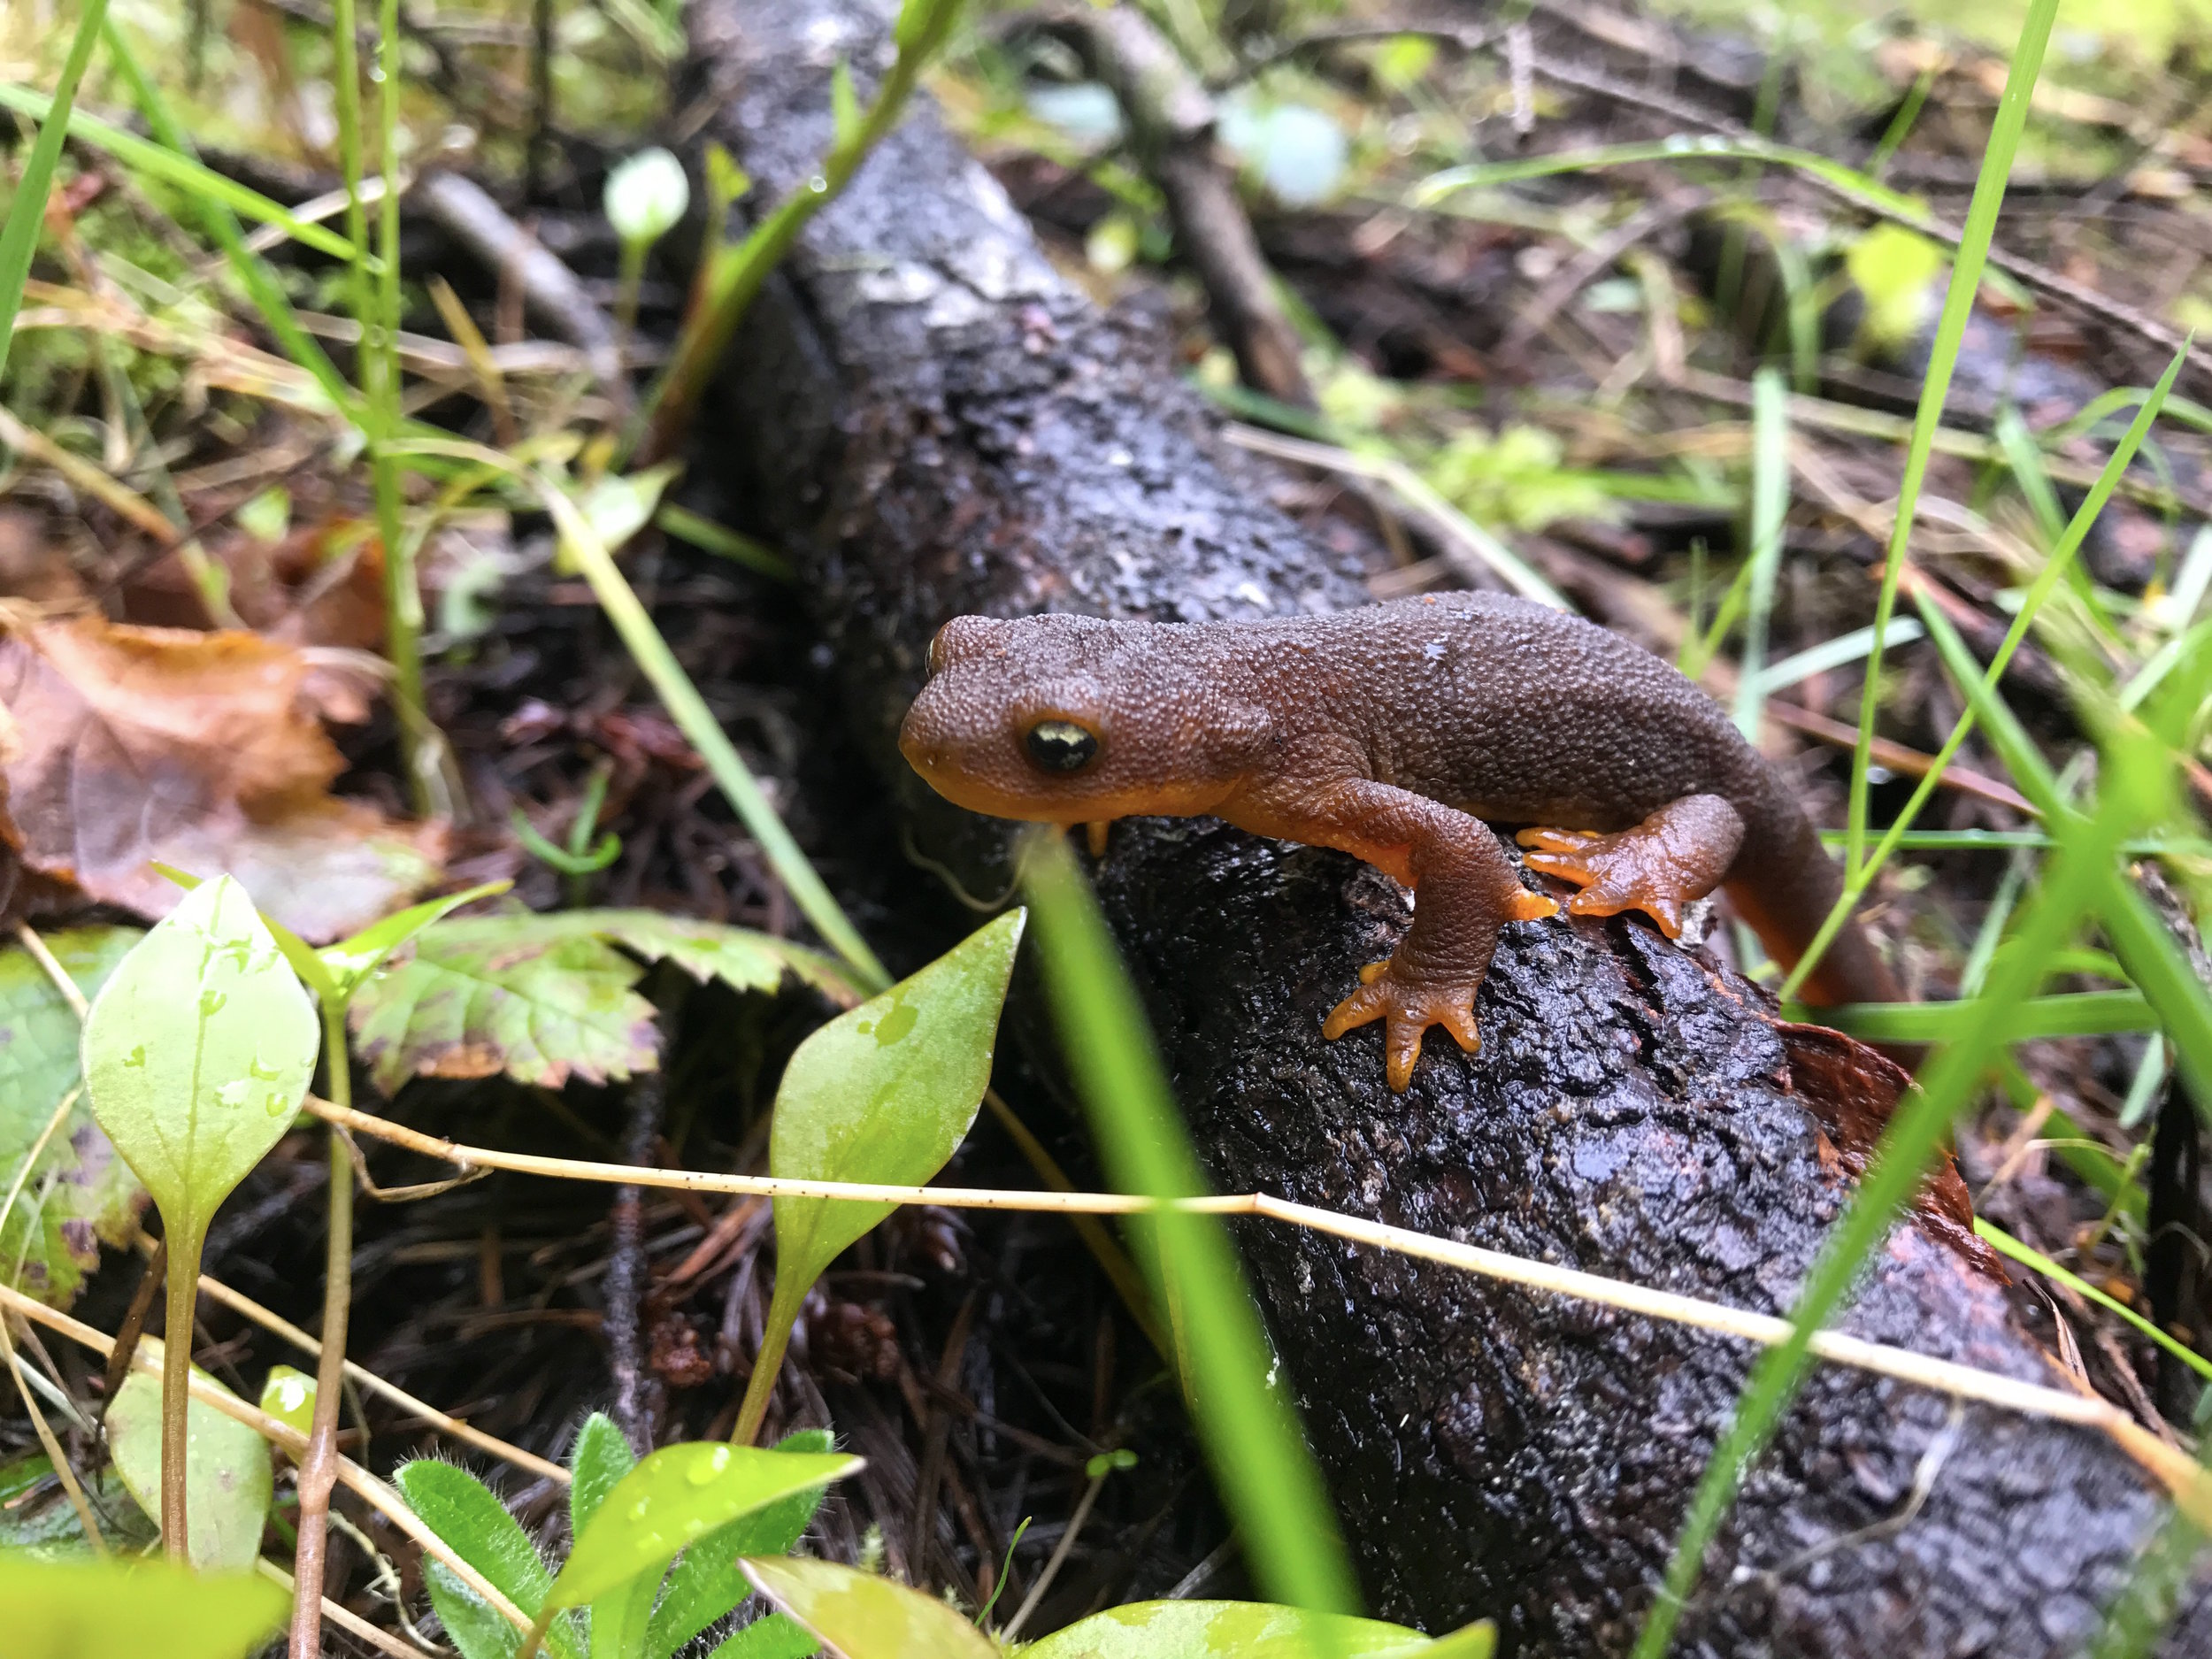 Salamander, Crale Creek OR